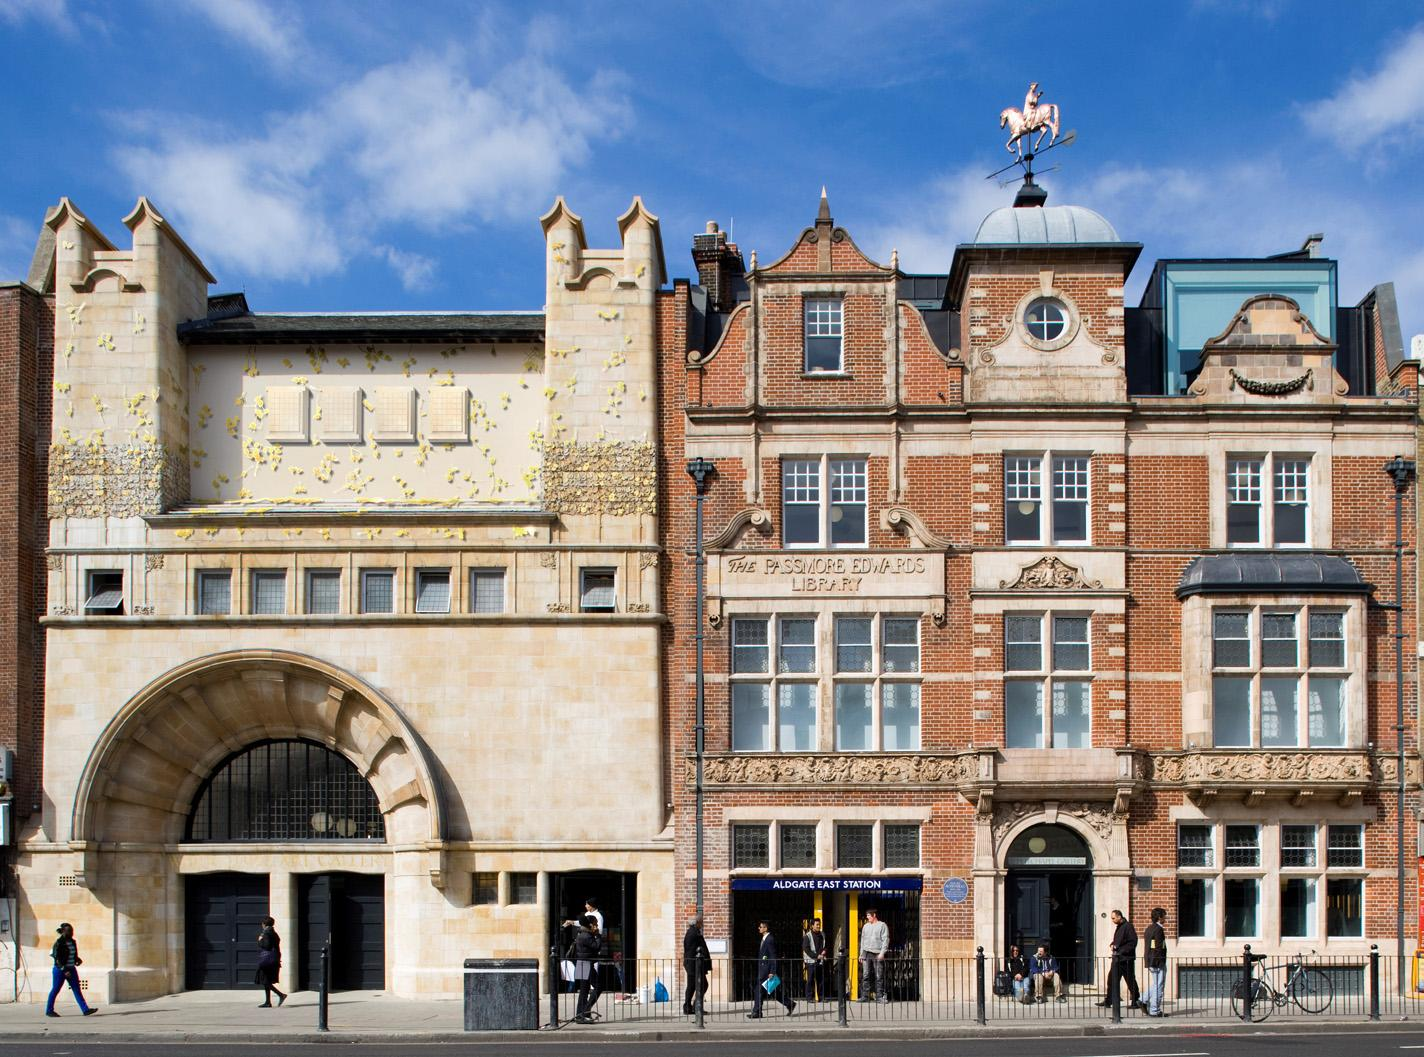 Whitechapel Art Gallery, London, England.